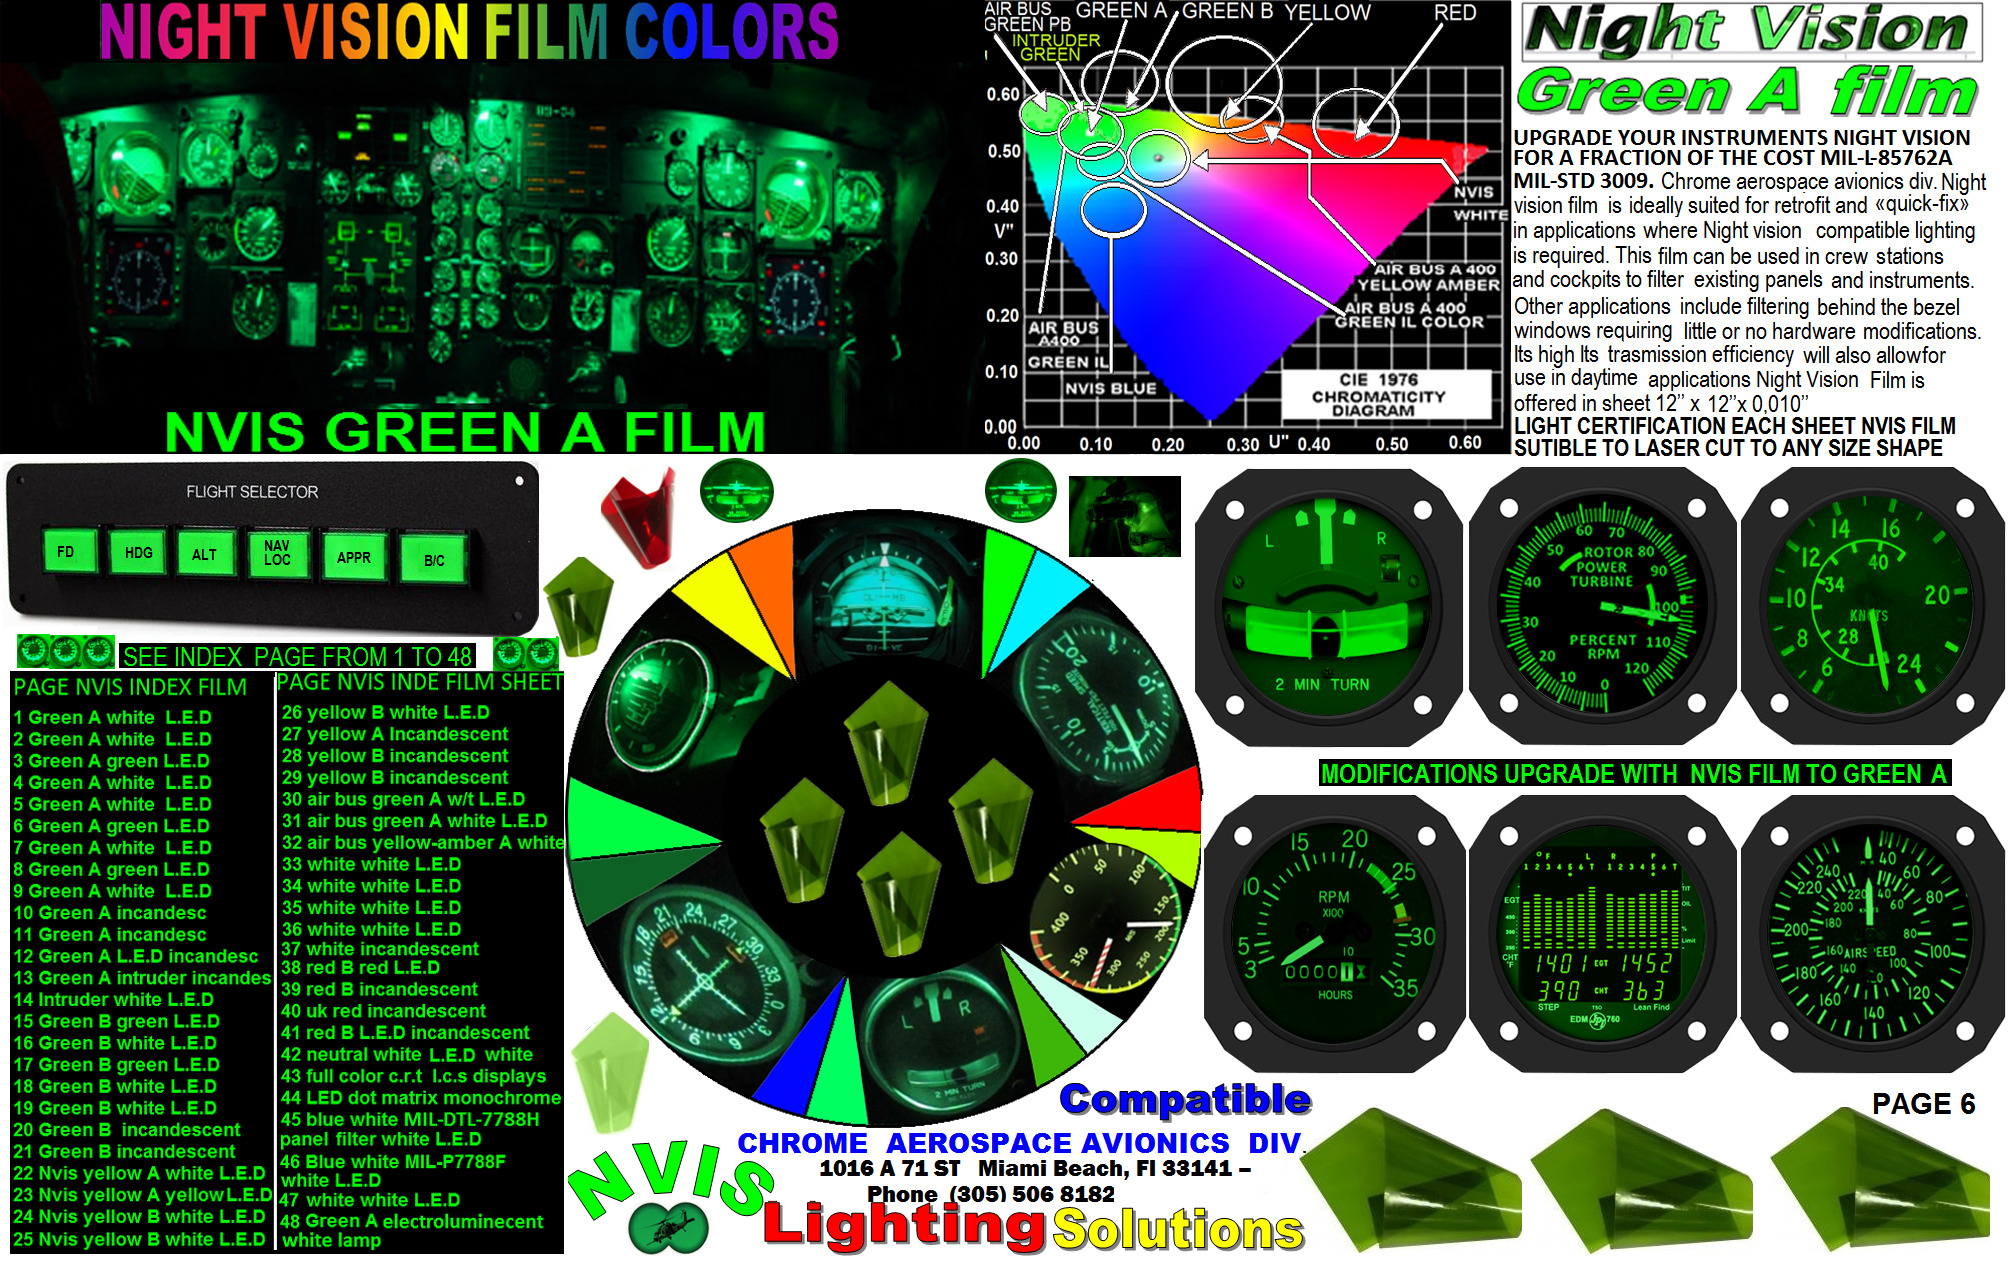 6 NVIS GREEN A FILM UPGRADE CONVERSION INSTRUMENTS 8-9-19